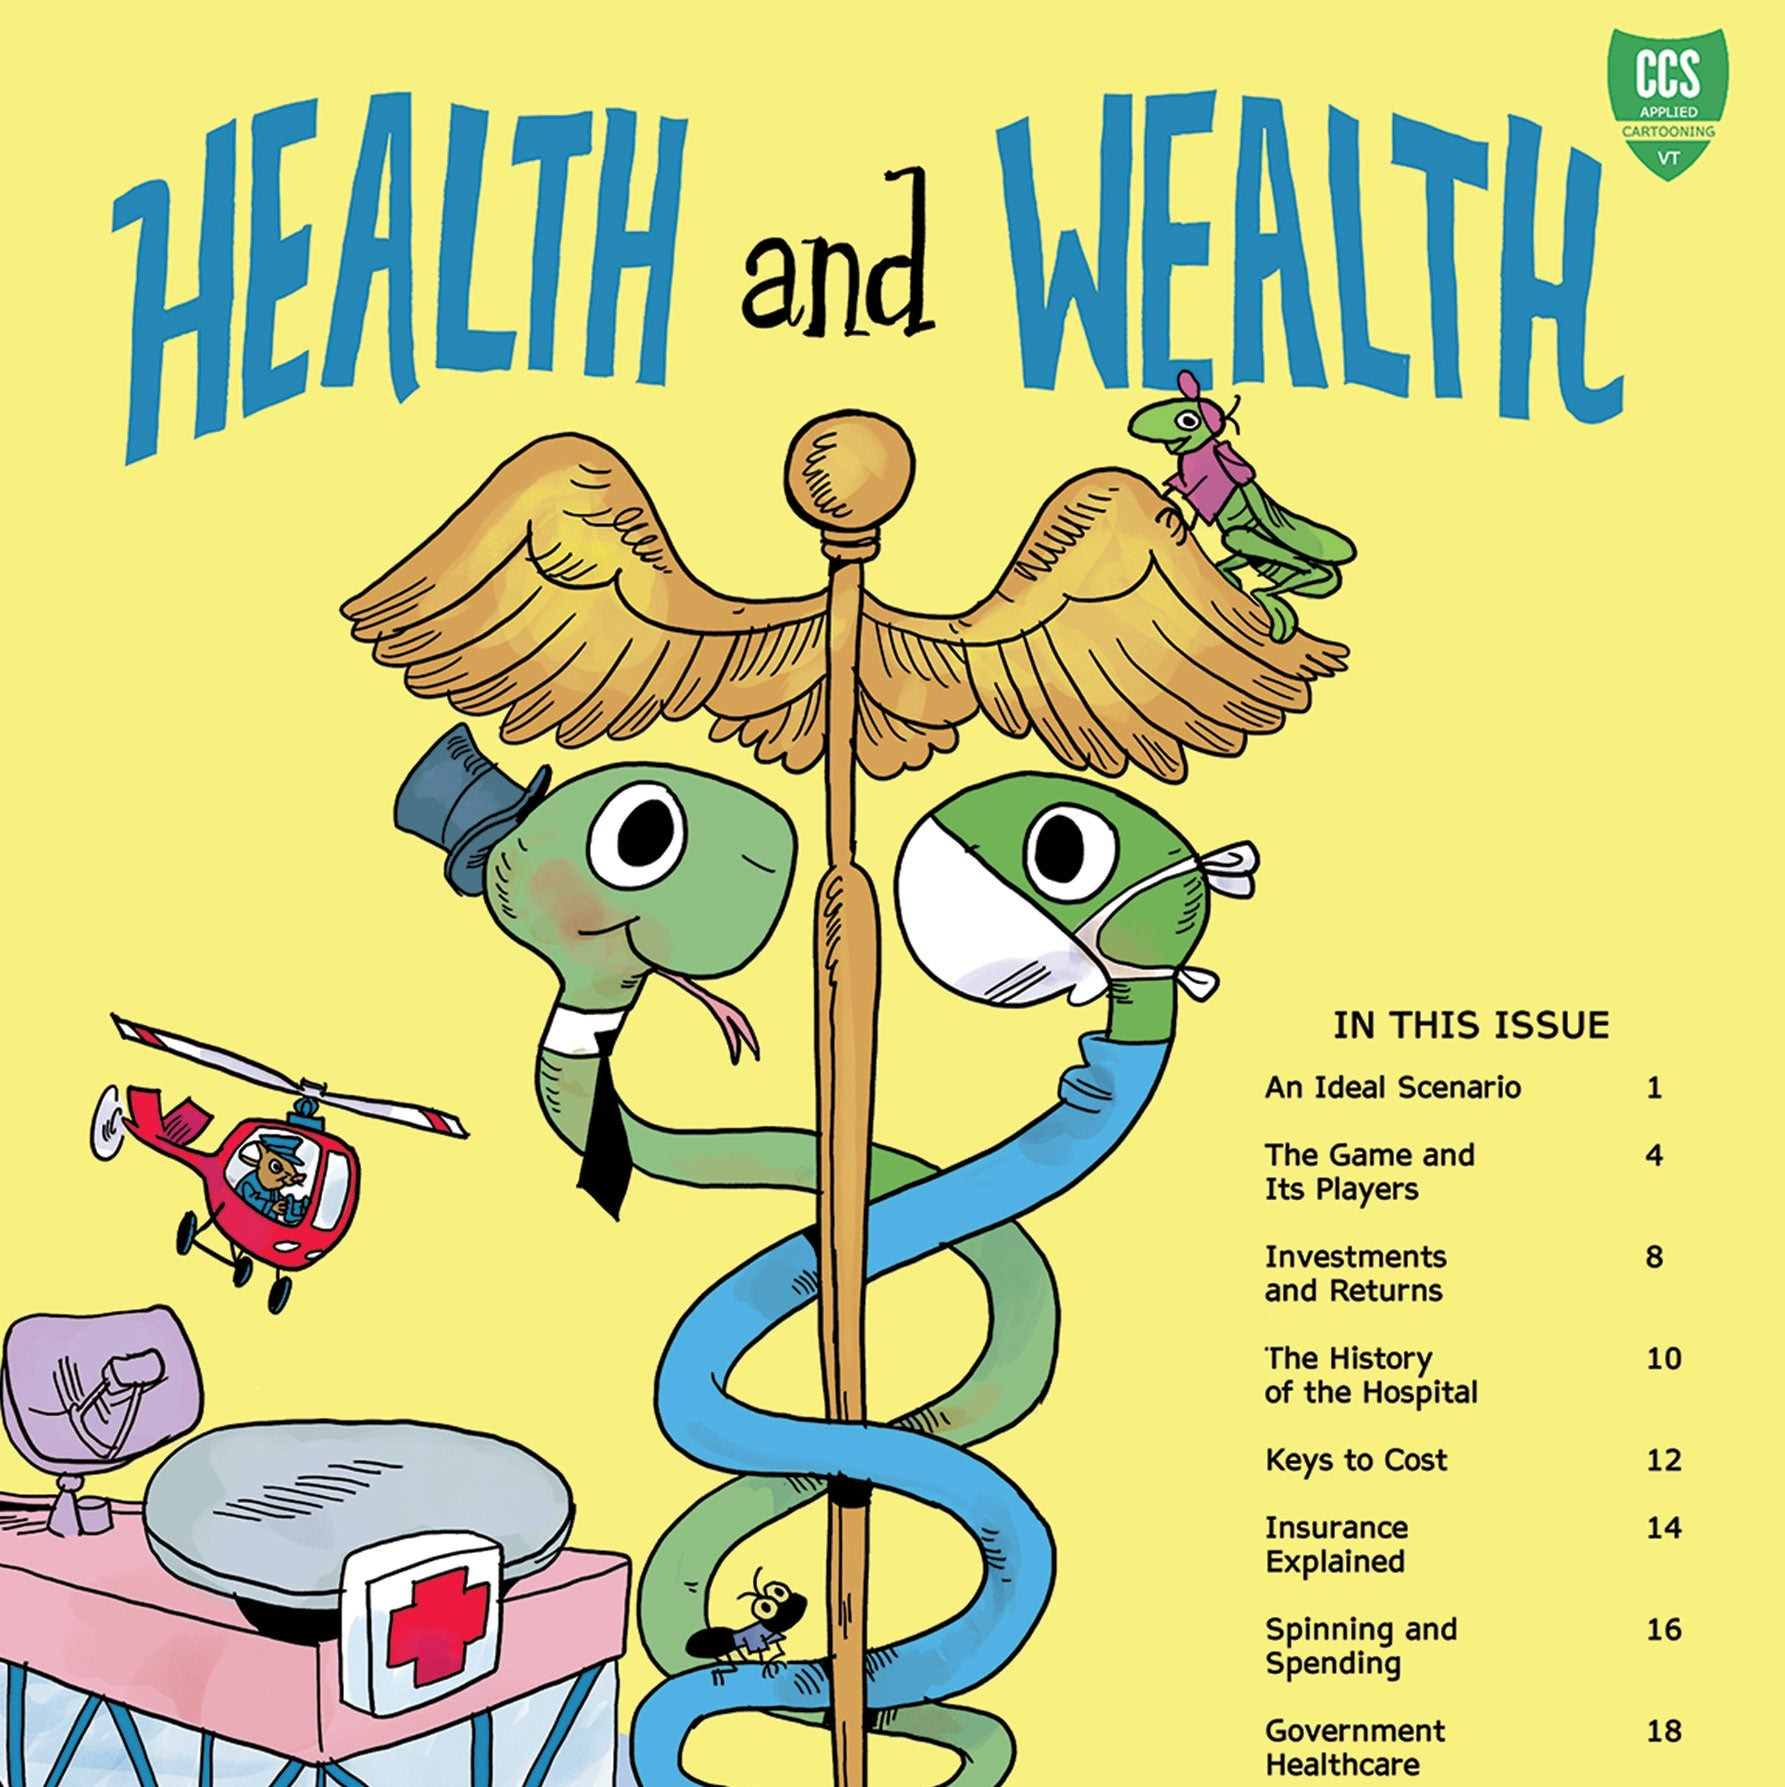 Cover image of the Health And Wealth comic book